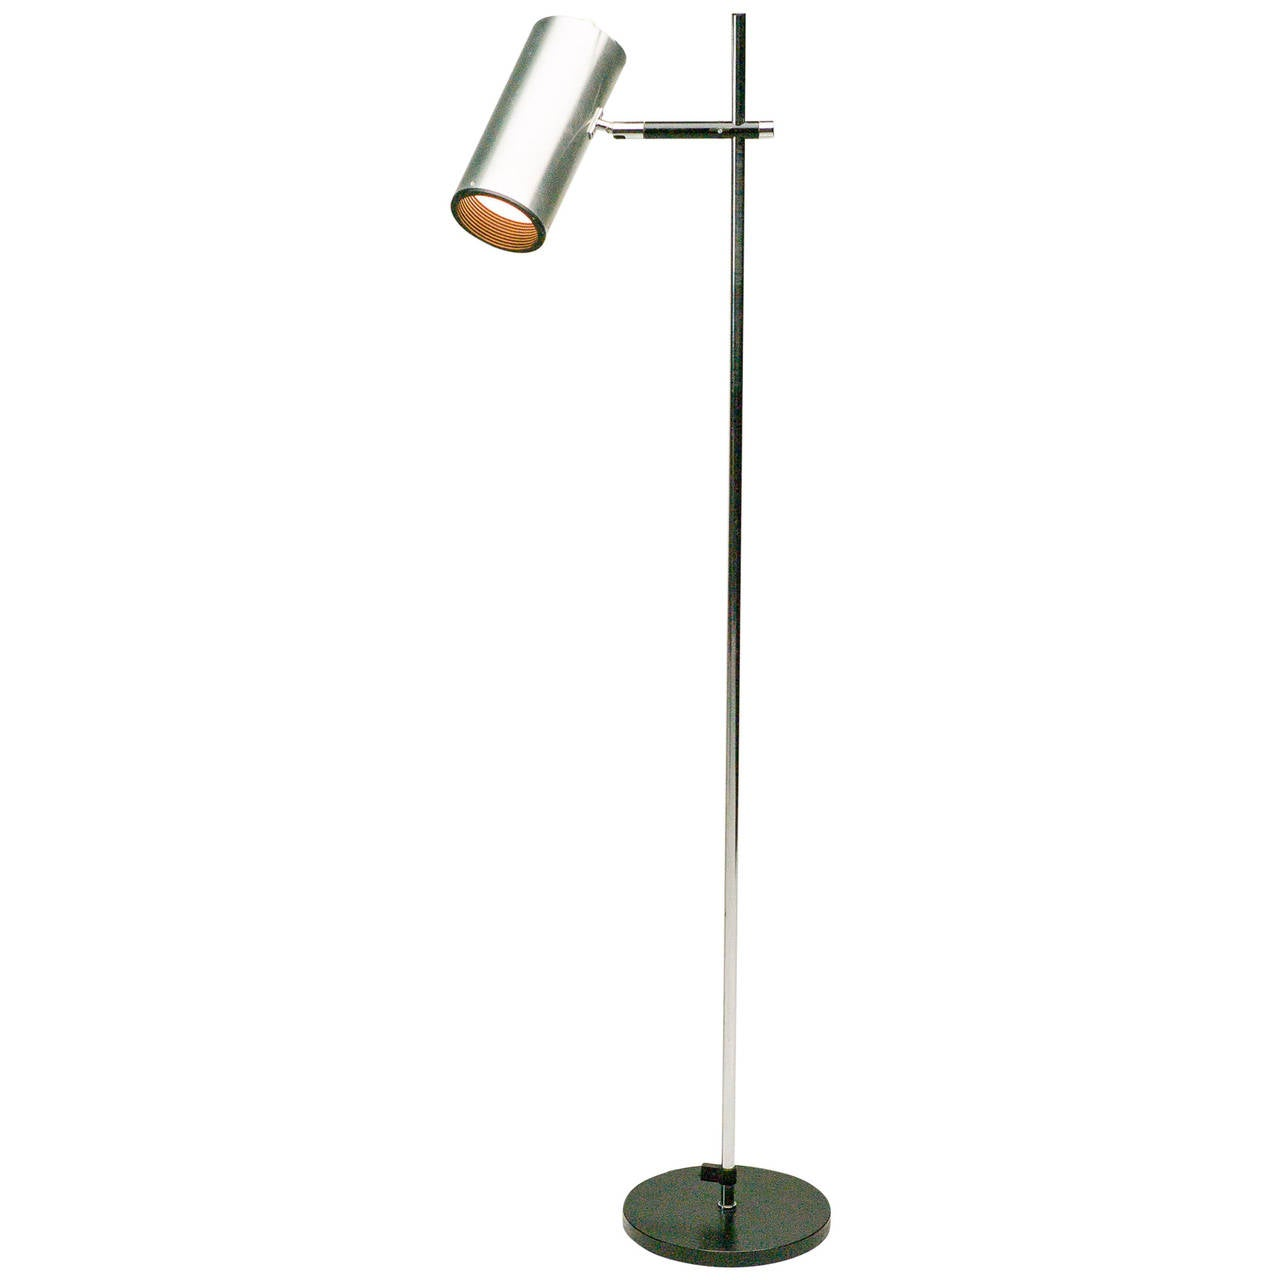 Maria pergay stainless steel floor lamp at 1stdibs maria pergay stainless steel floor lamp 1 mozeypictures Image collections